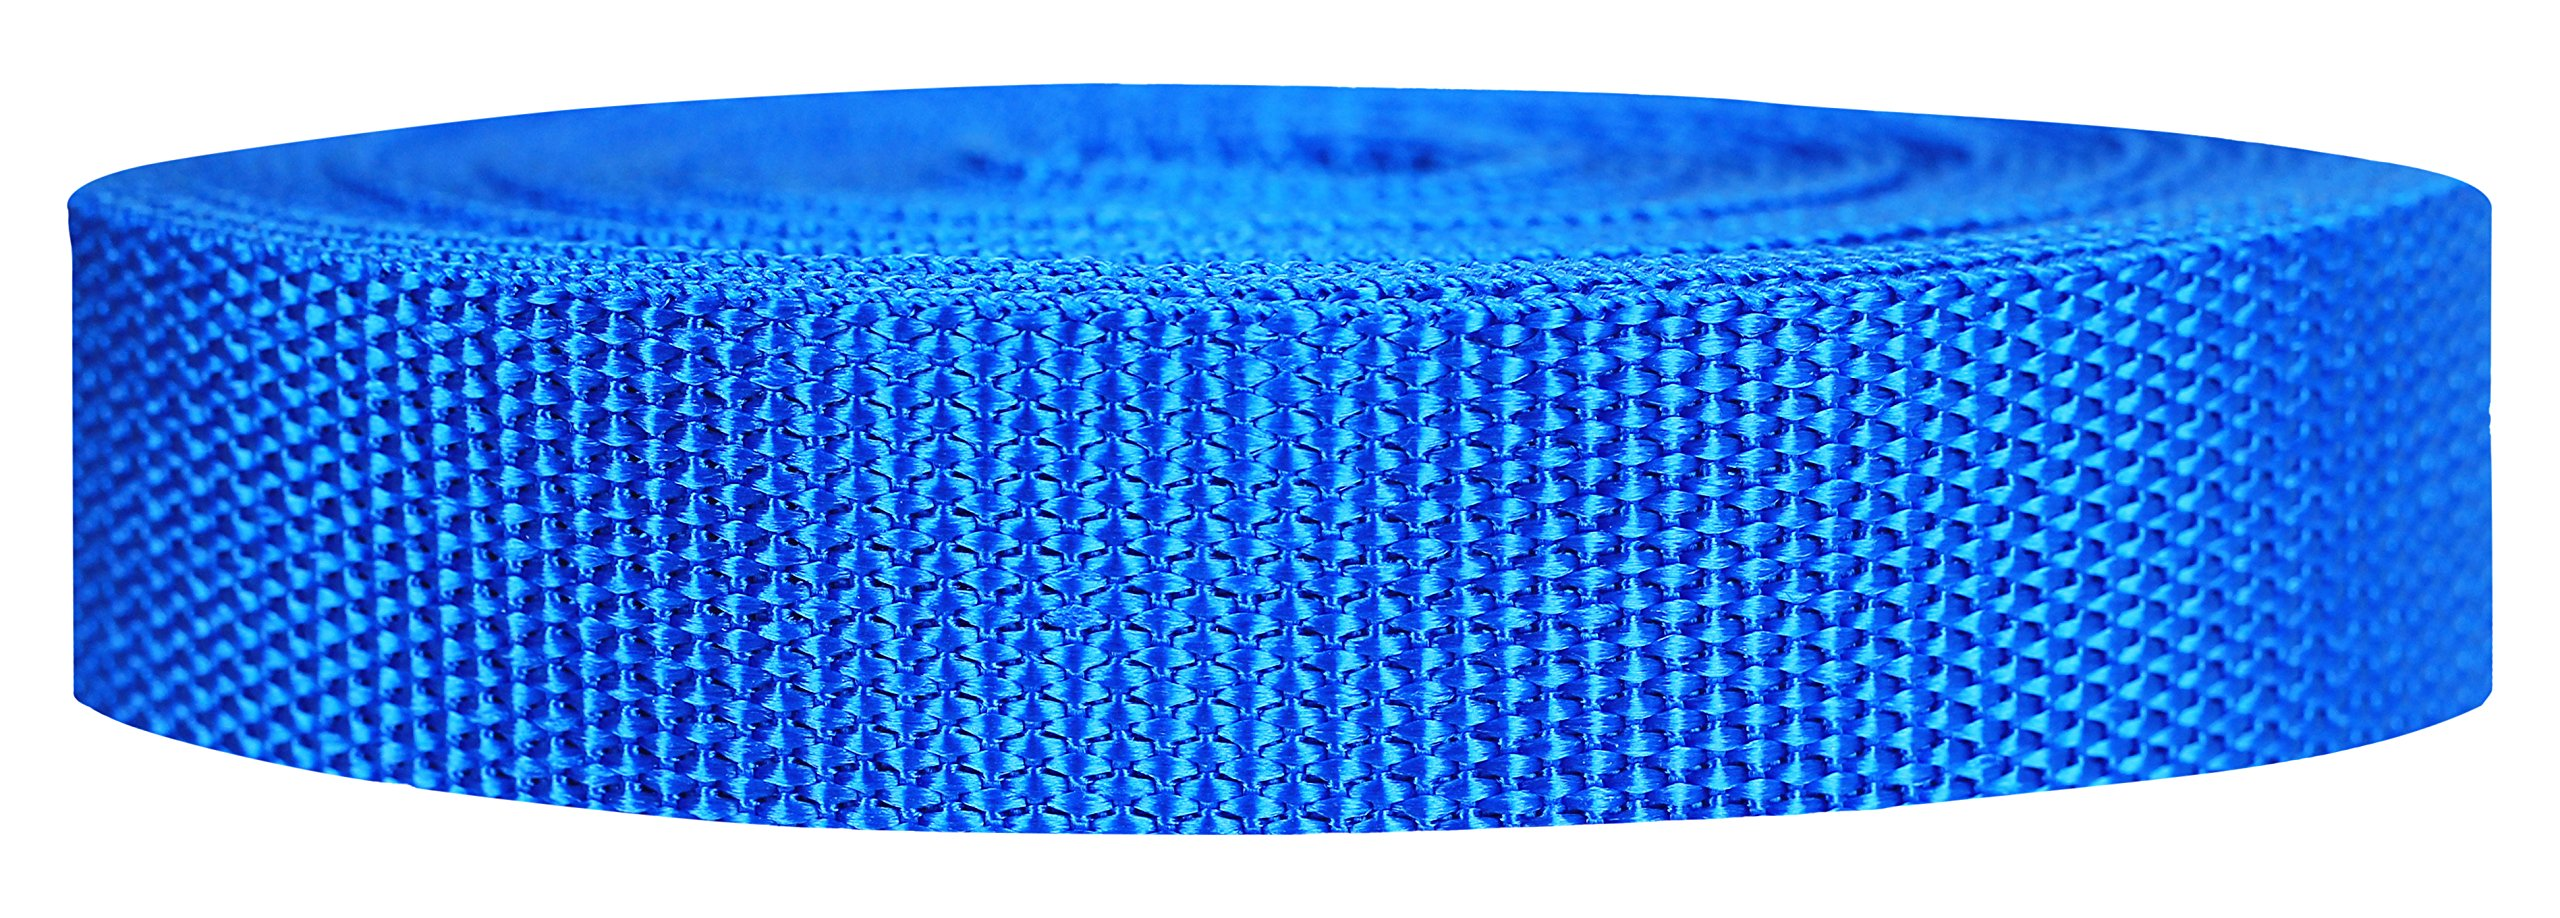 Strapworks Heavyweight Polypropylene Webbing - Heavy Duty Poly Strapping for Outdoor DIY Gear Repair, 1 Inch x 10 Yards - Pacific Blue